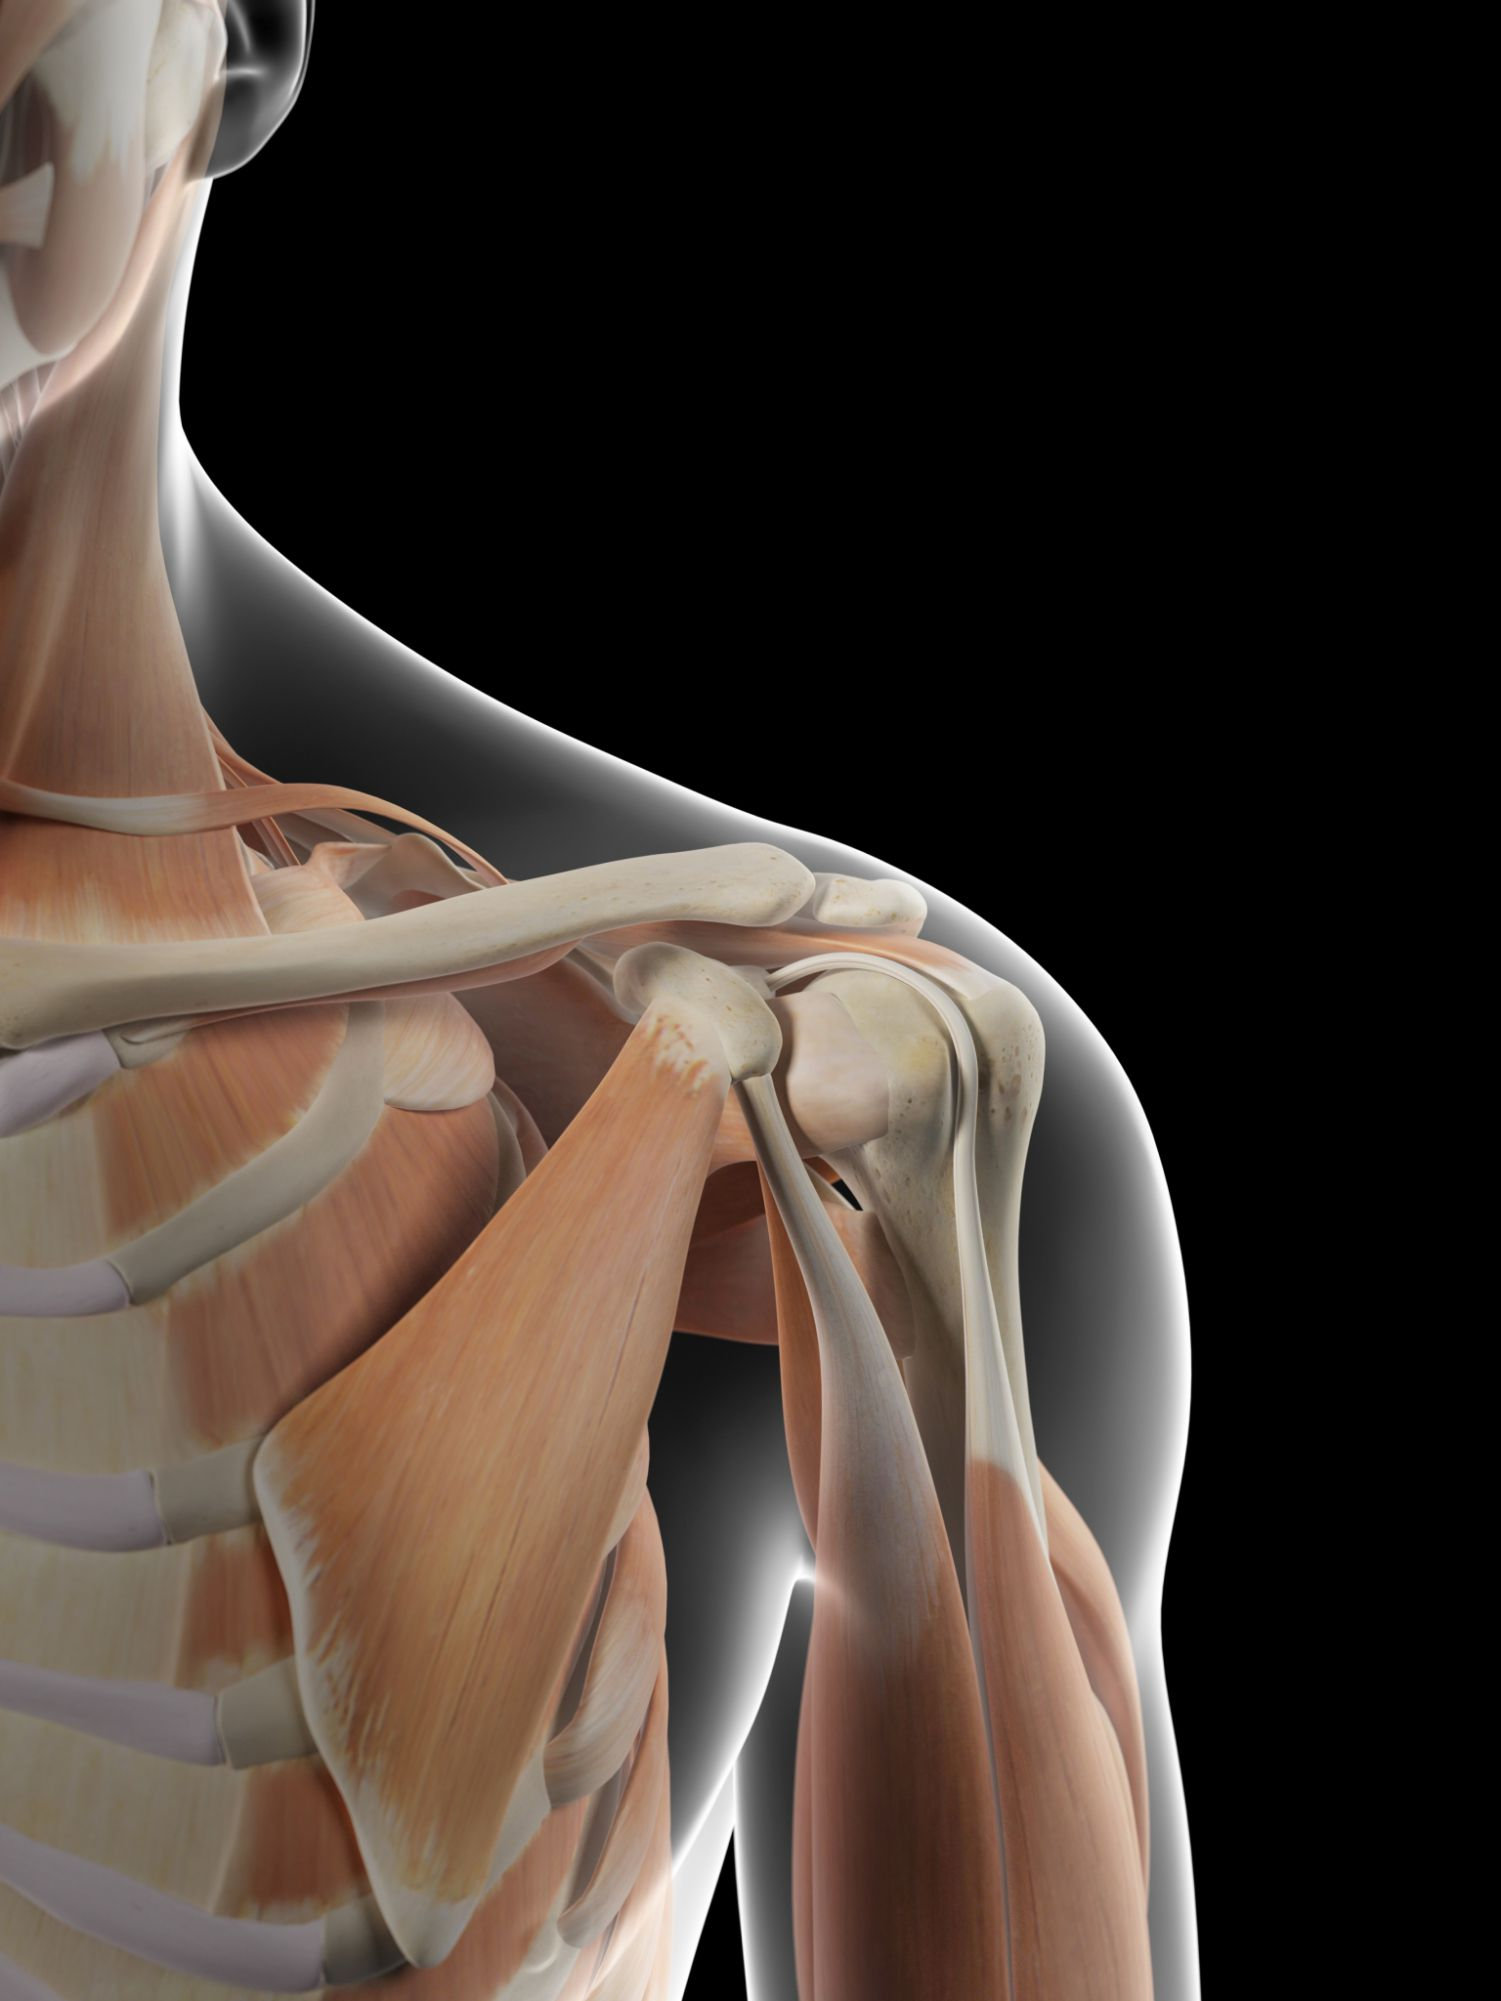 Anatomy Of The Human Shoulder Joint